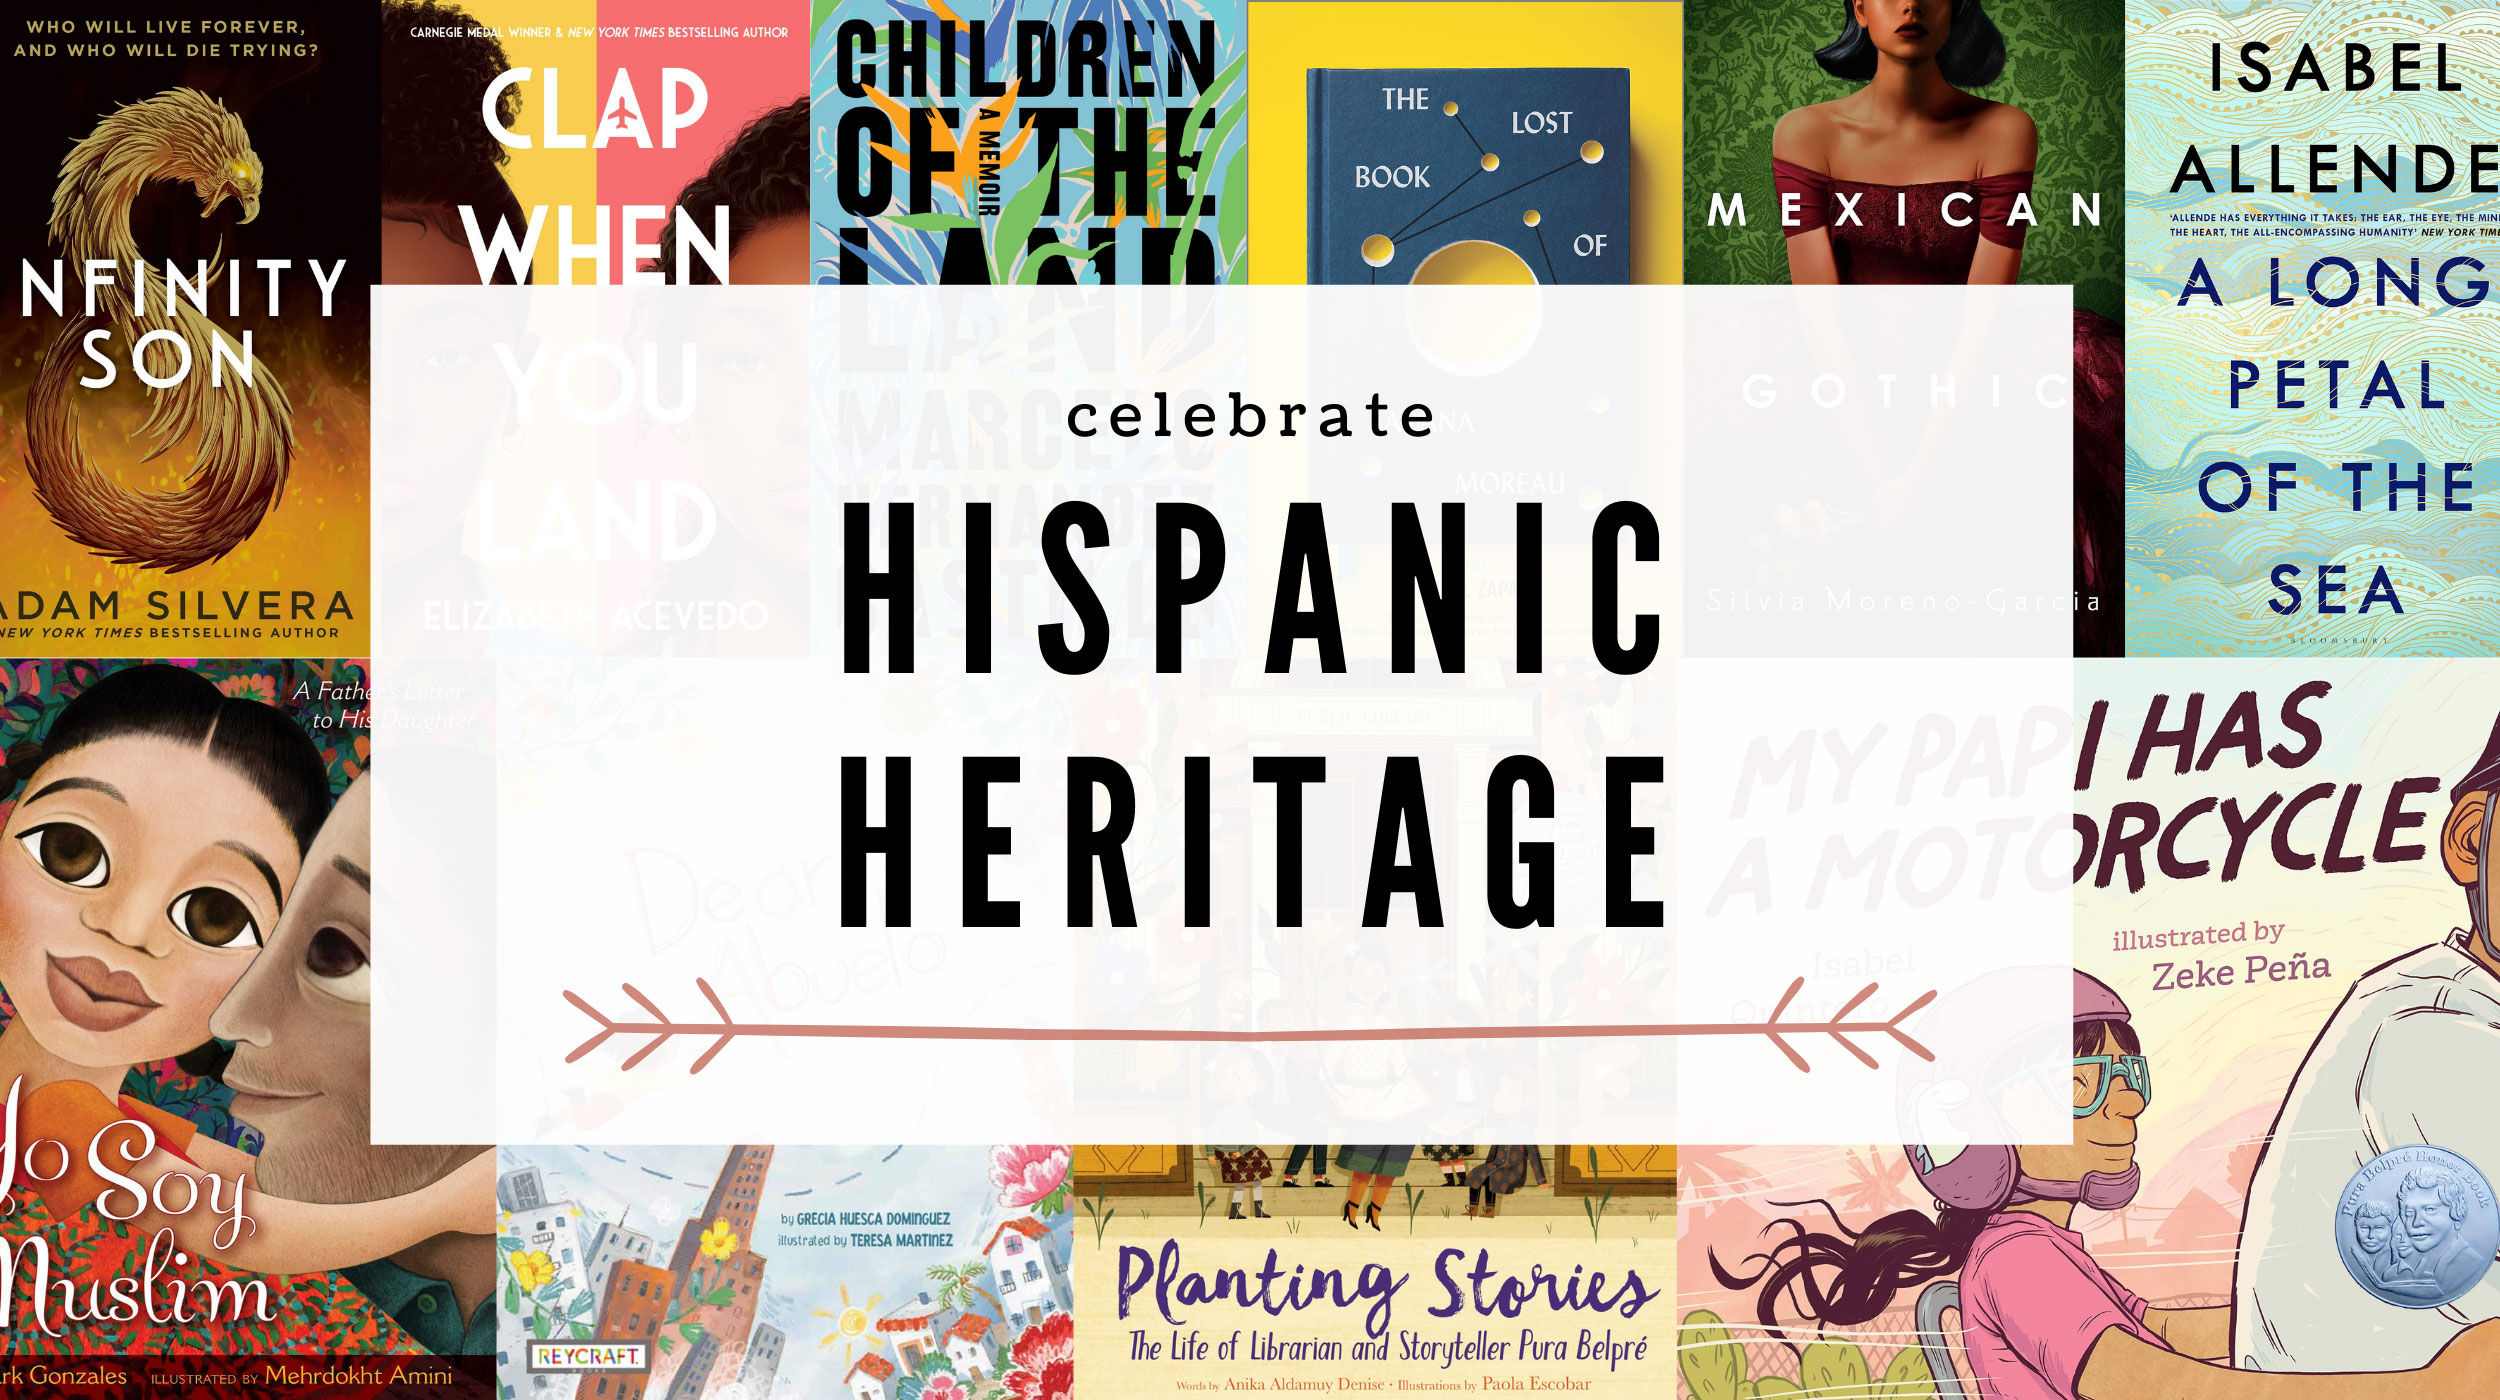 Hispanic Heritage: Book Titles: Infinity Son, Clap When You Can, Children of the Land, The Lost Book of Adana Moreau